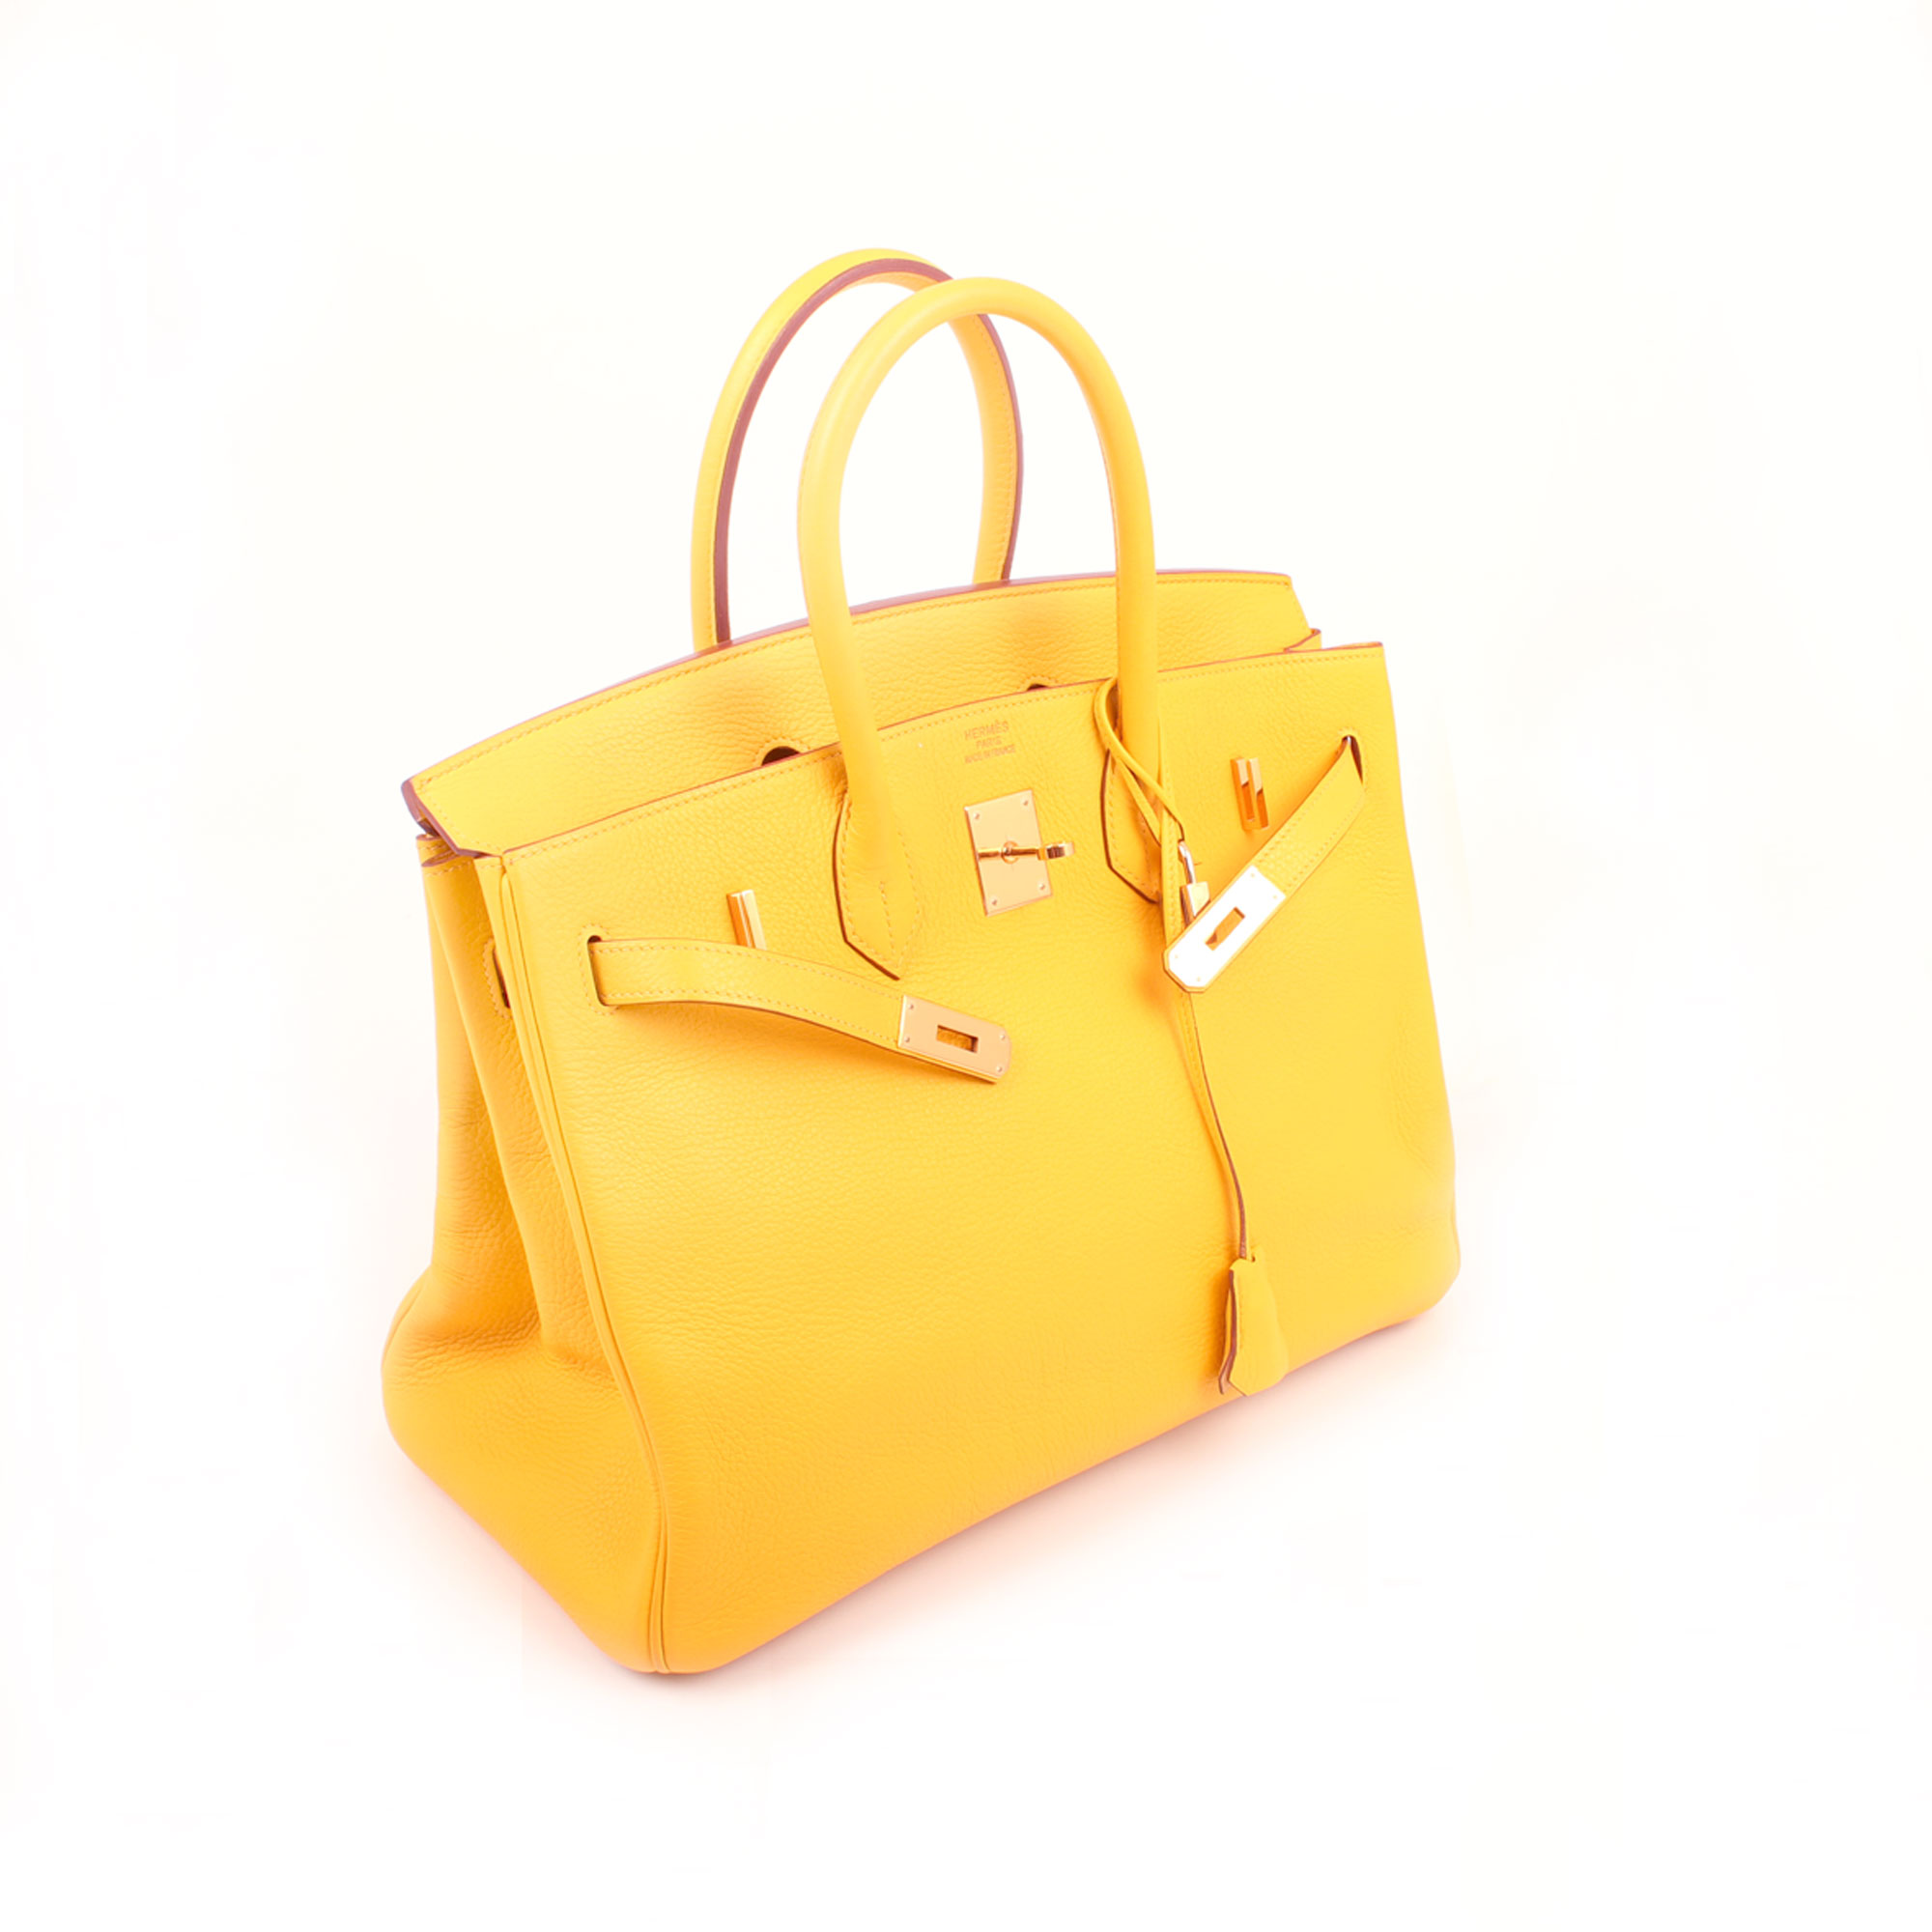 General image of hermes birkin 35 jaune togo leather